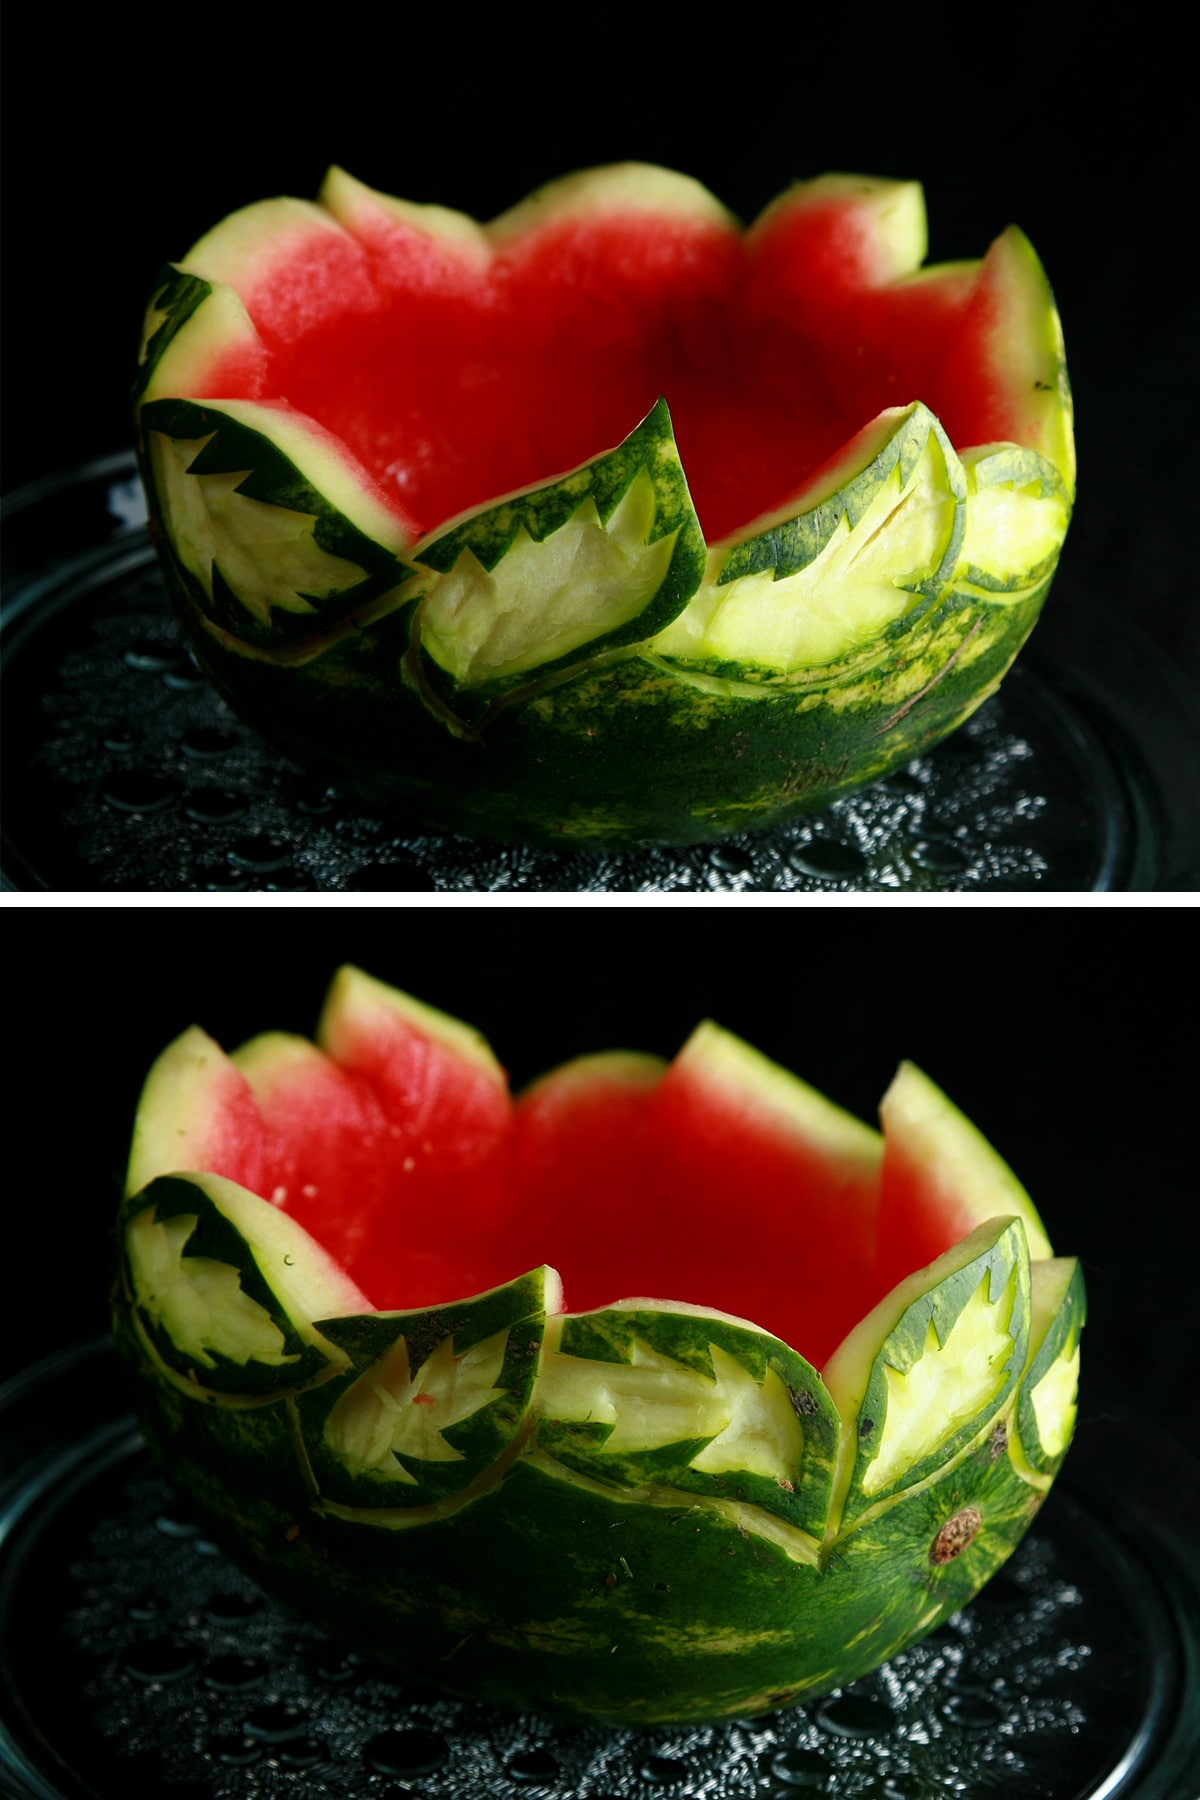 An empty watermelon bowl with a green and white leaf design carved into the top edge.